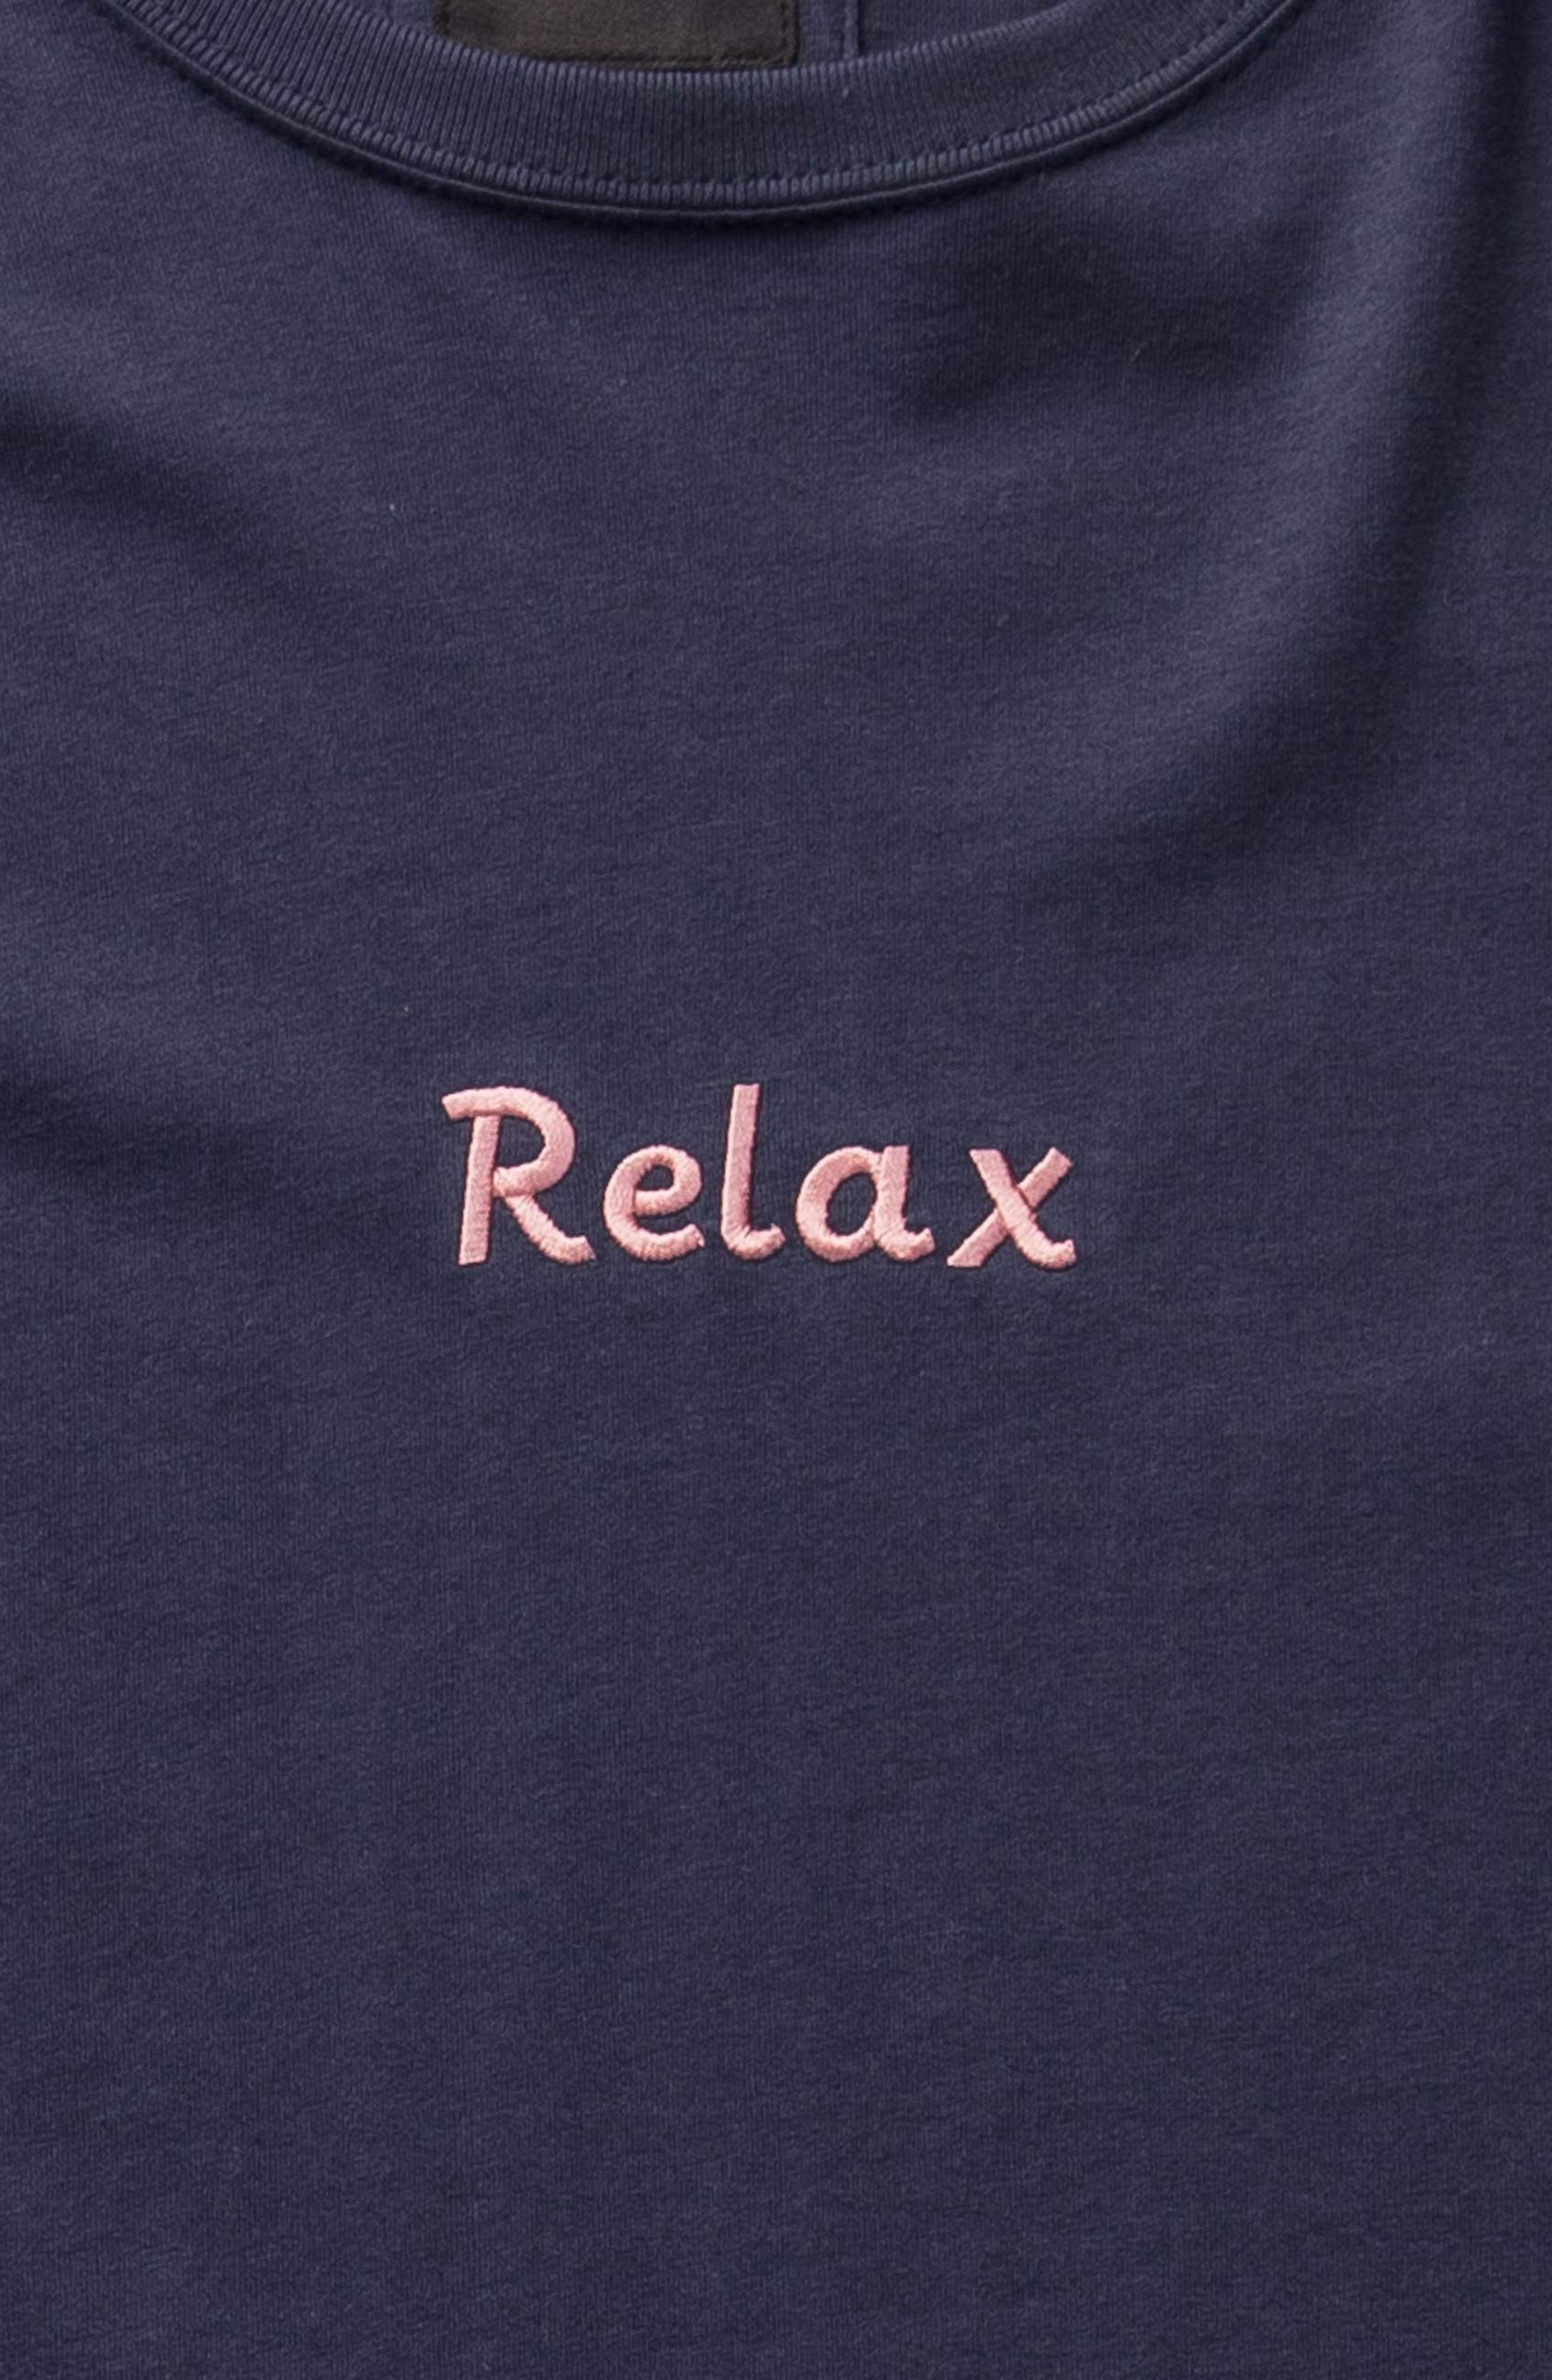 Relax Embroidered Long Sleeve T-Shirt,                             Alternate thumbnail 5, color,                             415